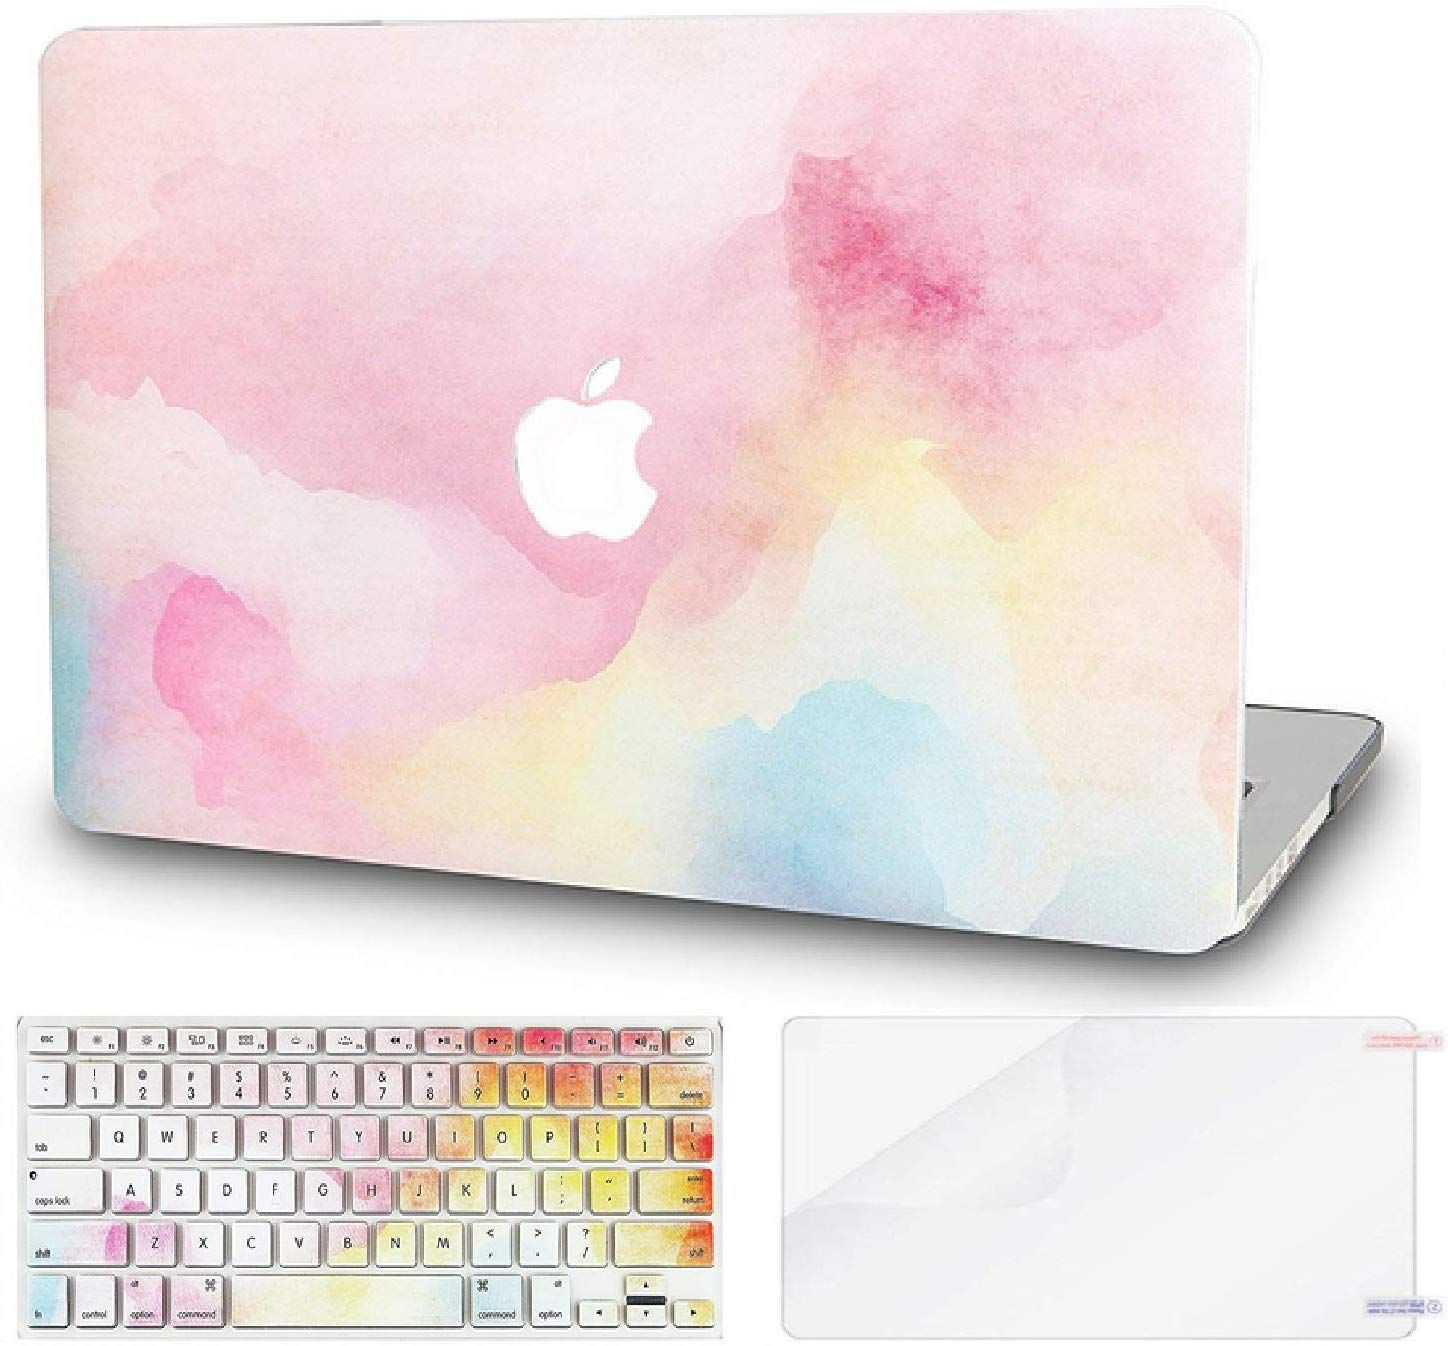 MacBook Air 13 Inch Case Cover (MacBook Air 13.3 Inch) is